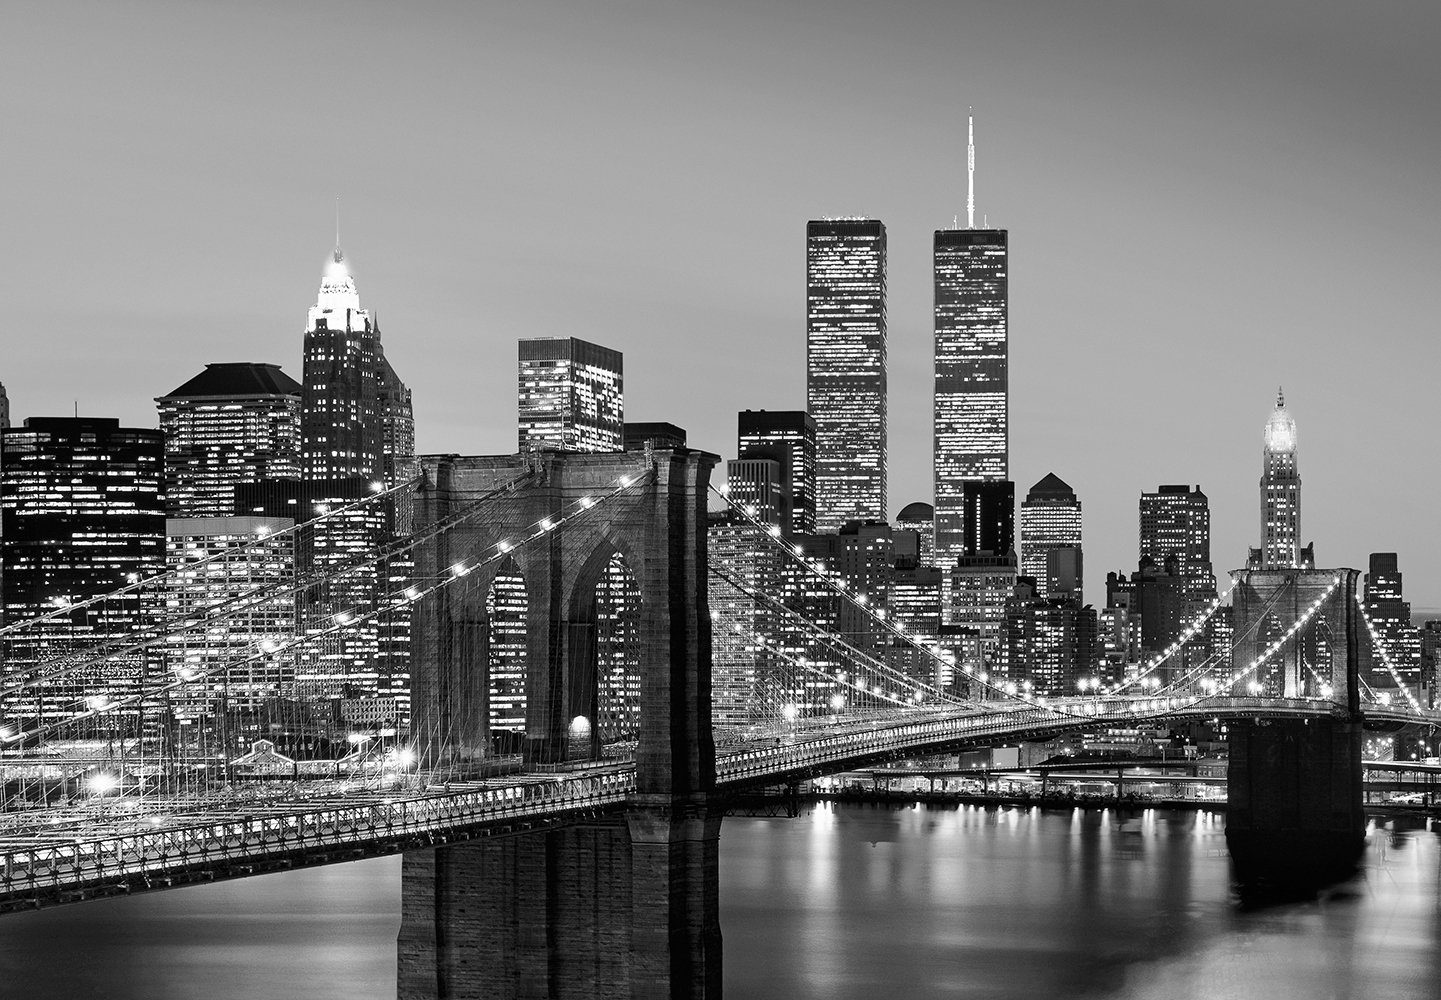 Fototapete »Manhattan Skyline at Night«, 8-teilig, 366x254 cm